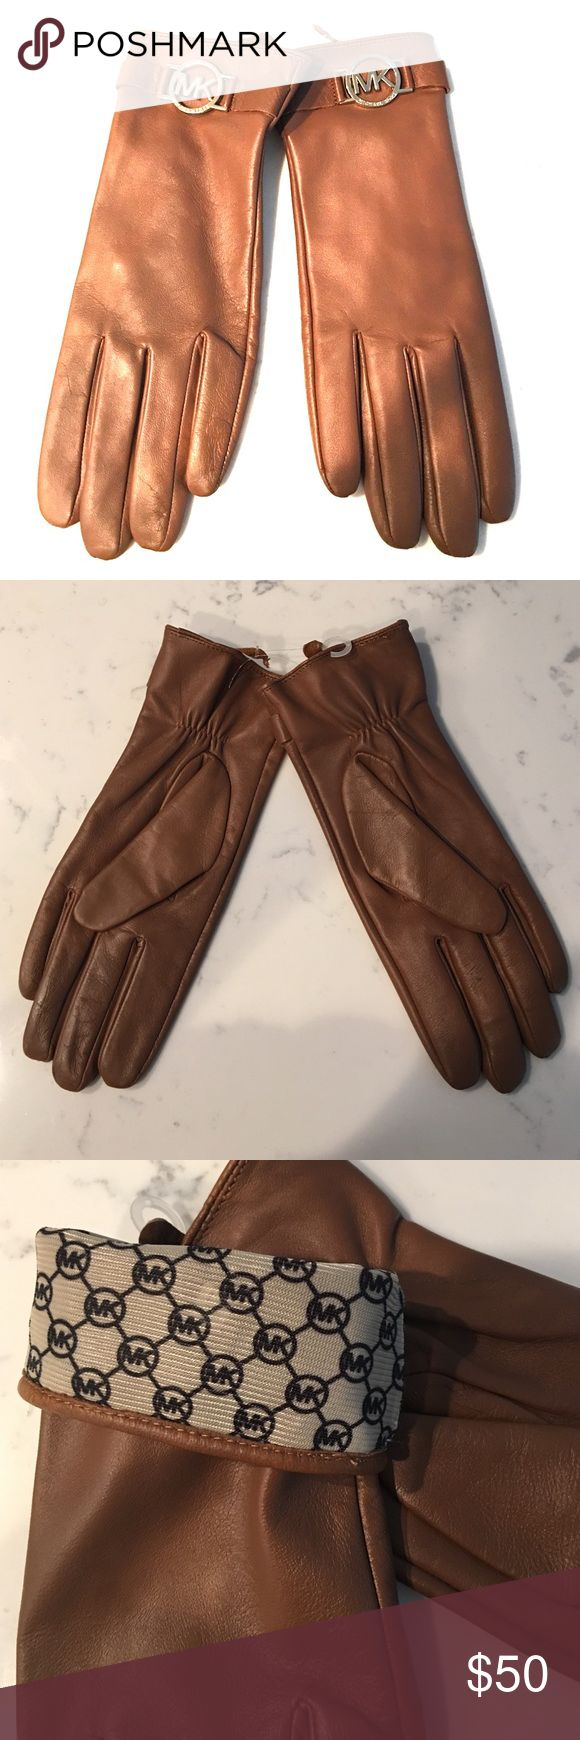 Ladies leather gloves extra small - Michael Kors Genuine Leather Gloves Nwt